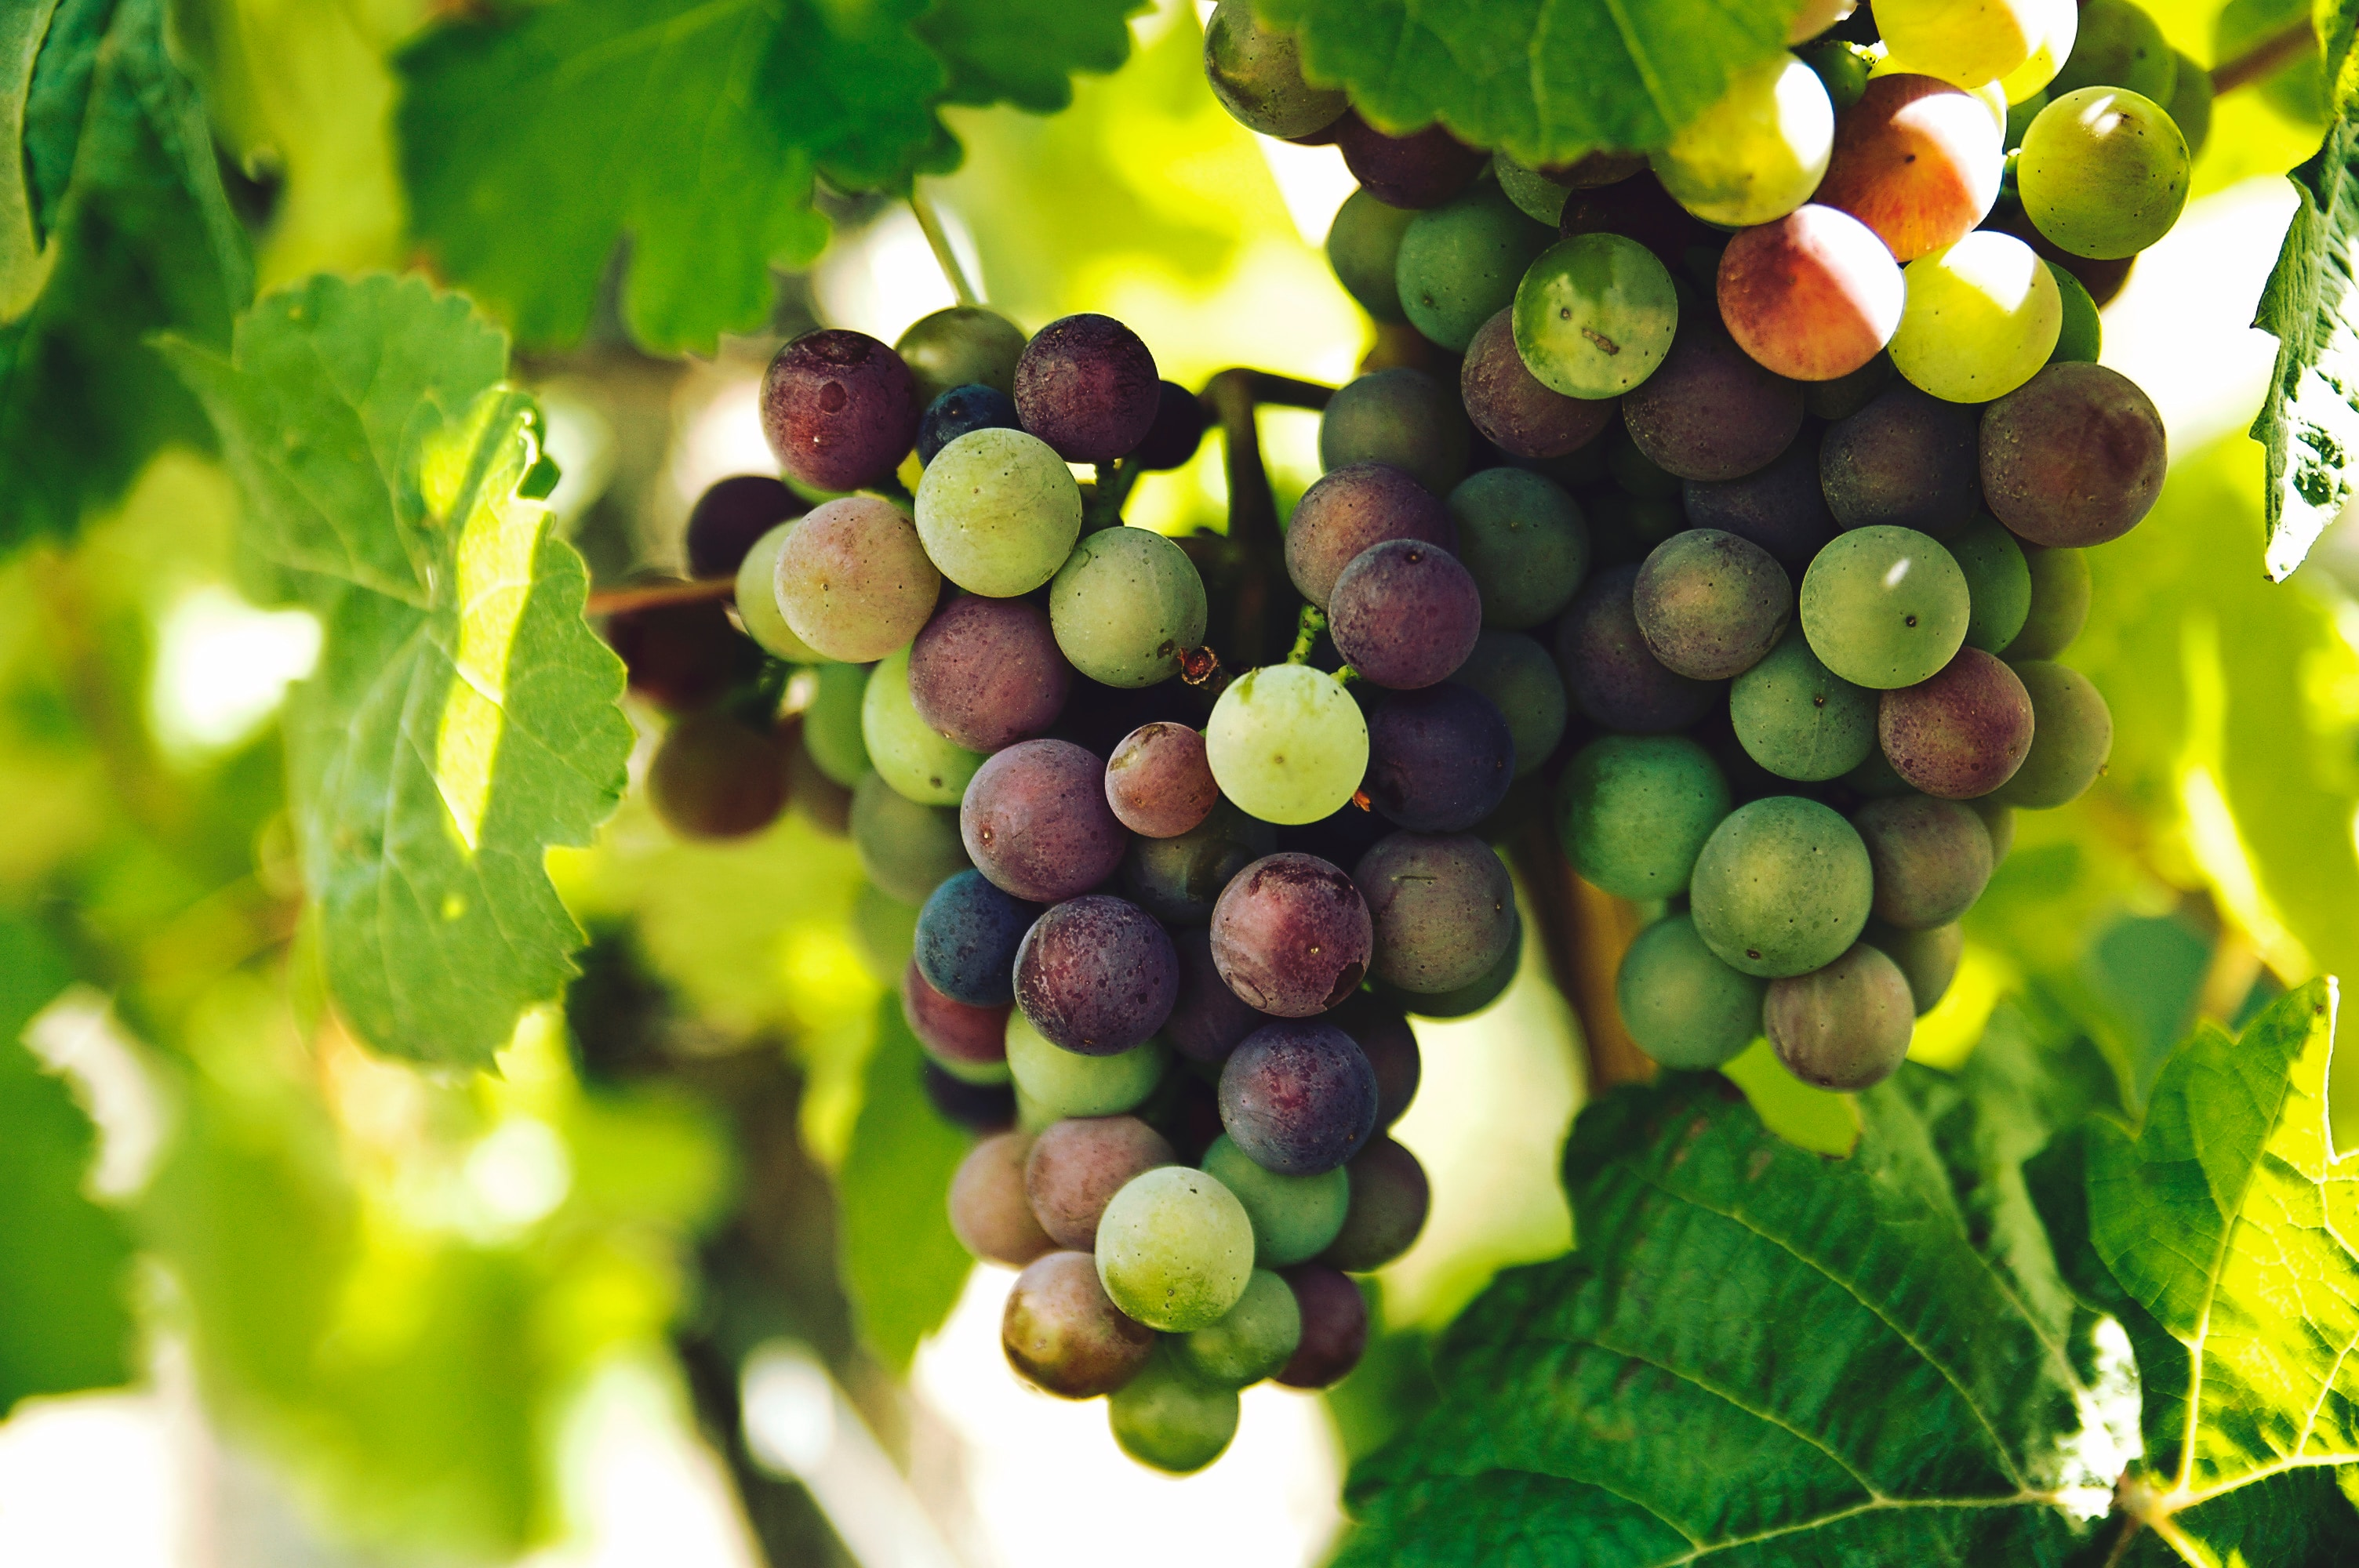 photo of a grapevine with grapes showing.